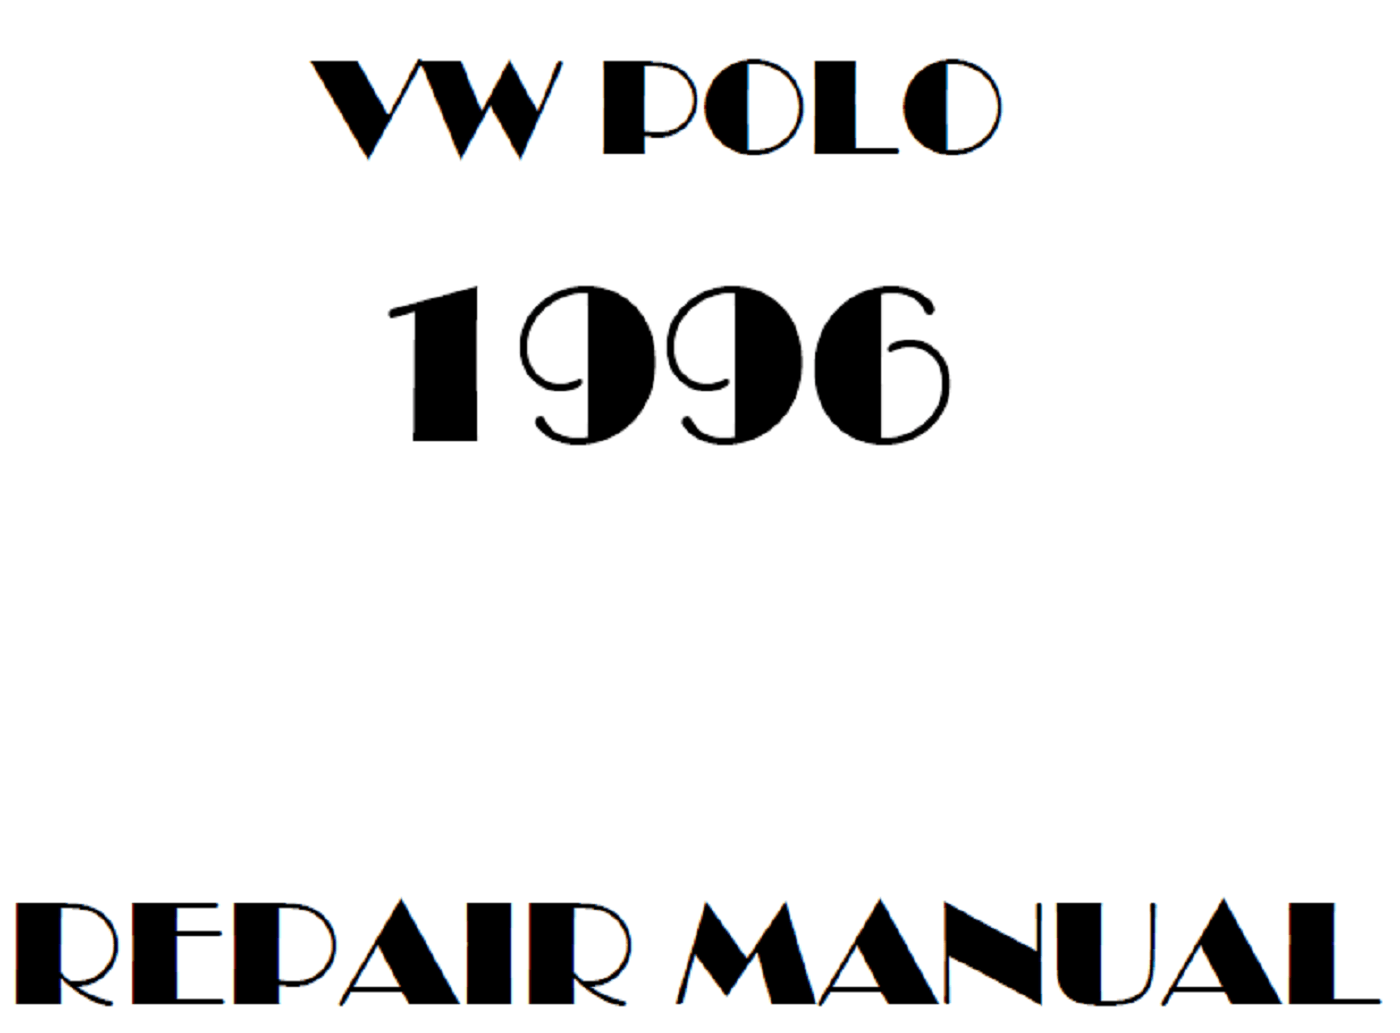 1996 Volkswagen Polo repair manual